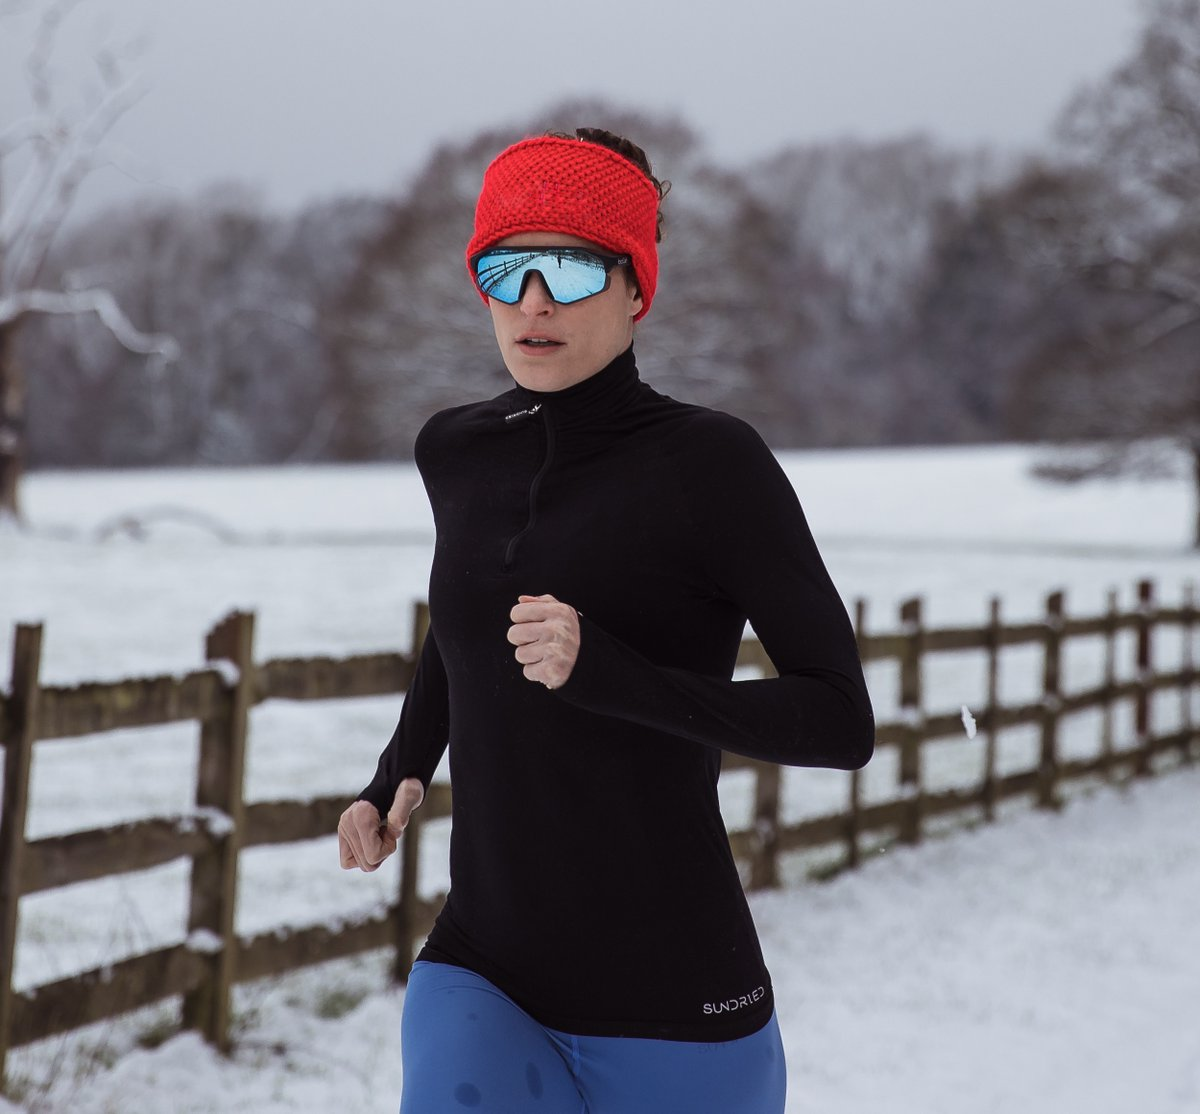 The weather may be getting better, but we wanted to share one last picture of the snow before Spring arrives.  @alicehector82 wears our 'Women's Threshold Half Zip Jacket' and '7/8 Leggings'.   #triathlete #snow #runner #running